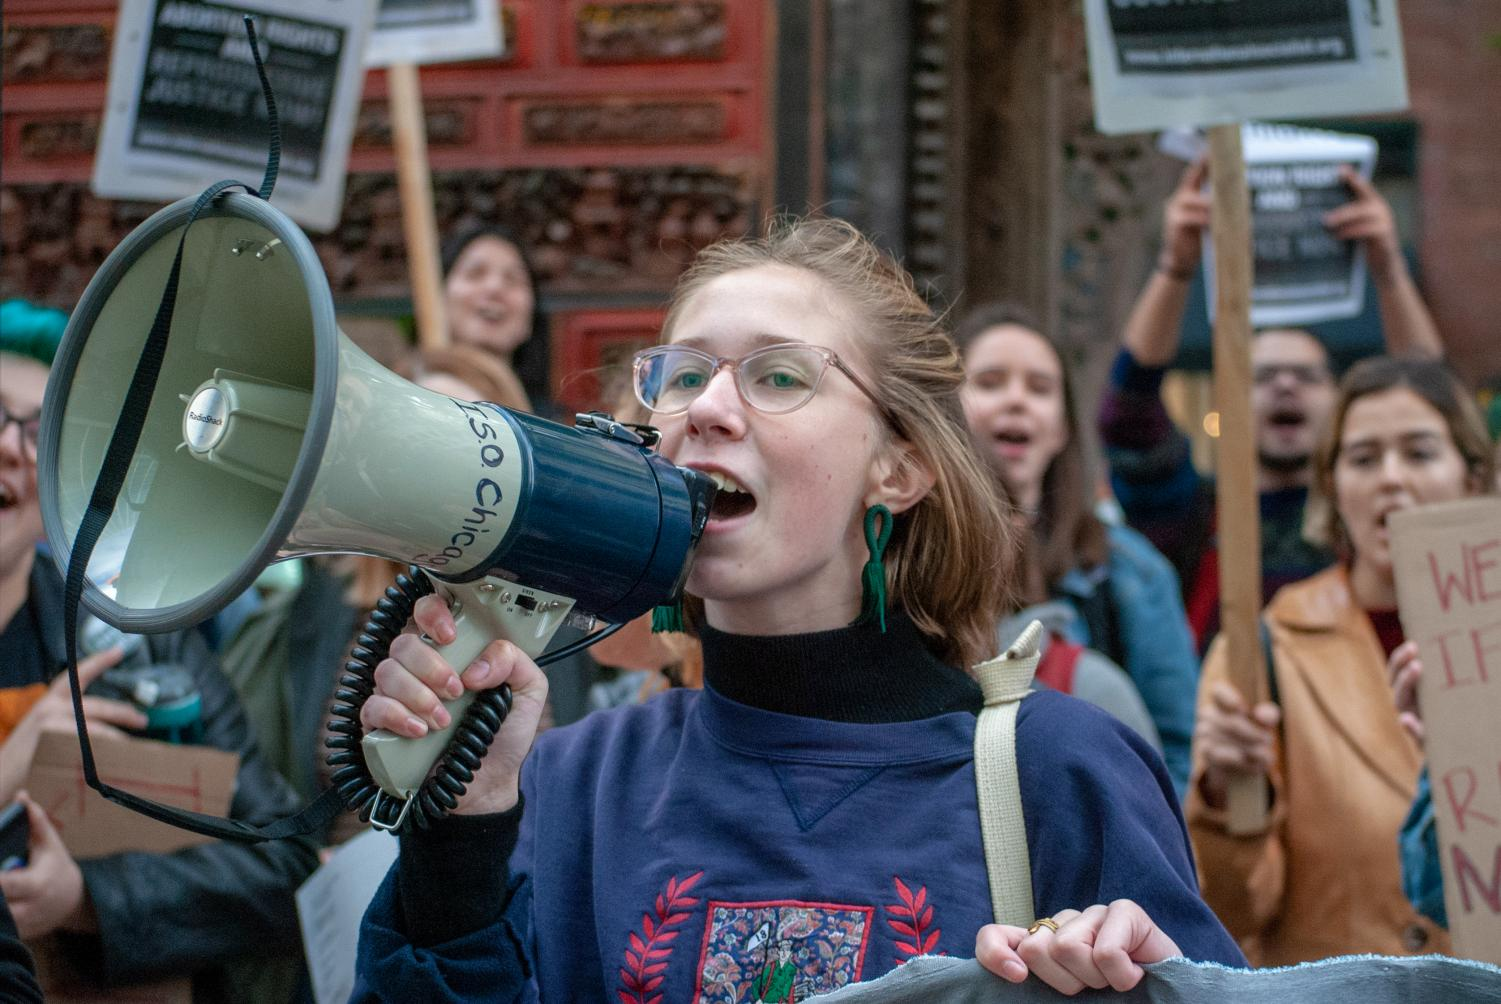 Holding onto a megaphone, a protester stands outside the American Bar Association Chicago in opposition of the nomination of Judge Brett Kavanaugh following sexual assault claims.